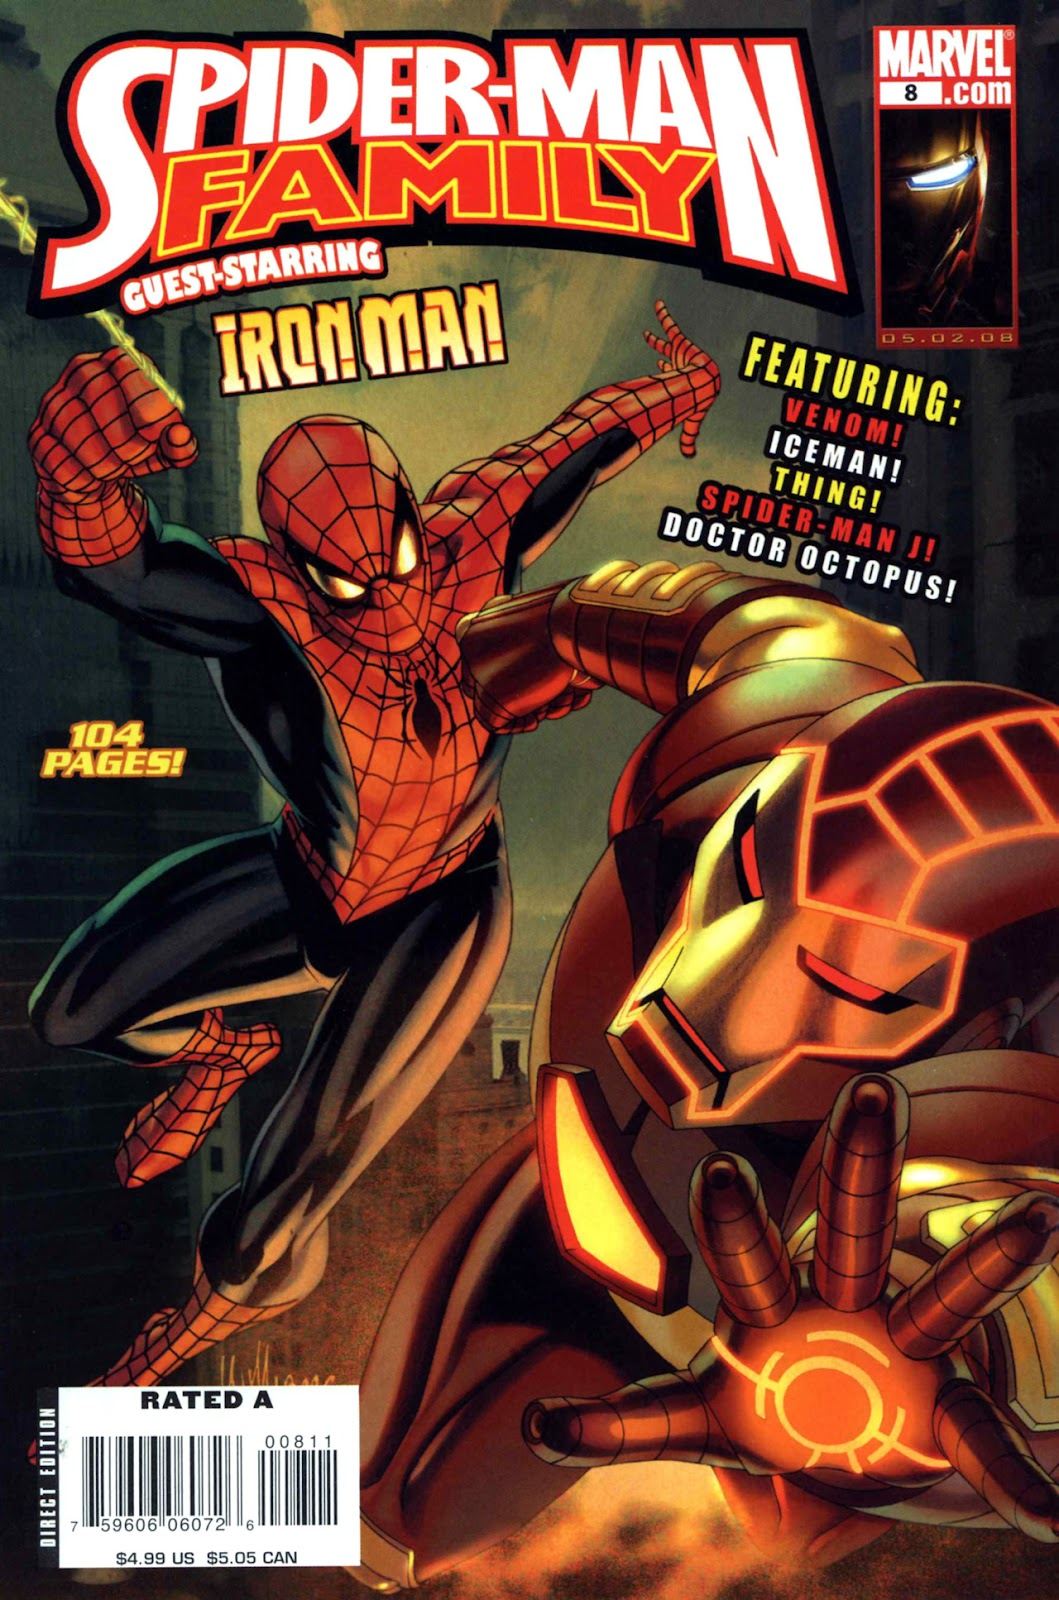 Spider-Man Family (2007) issue 8 - Page 1